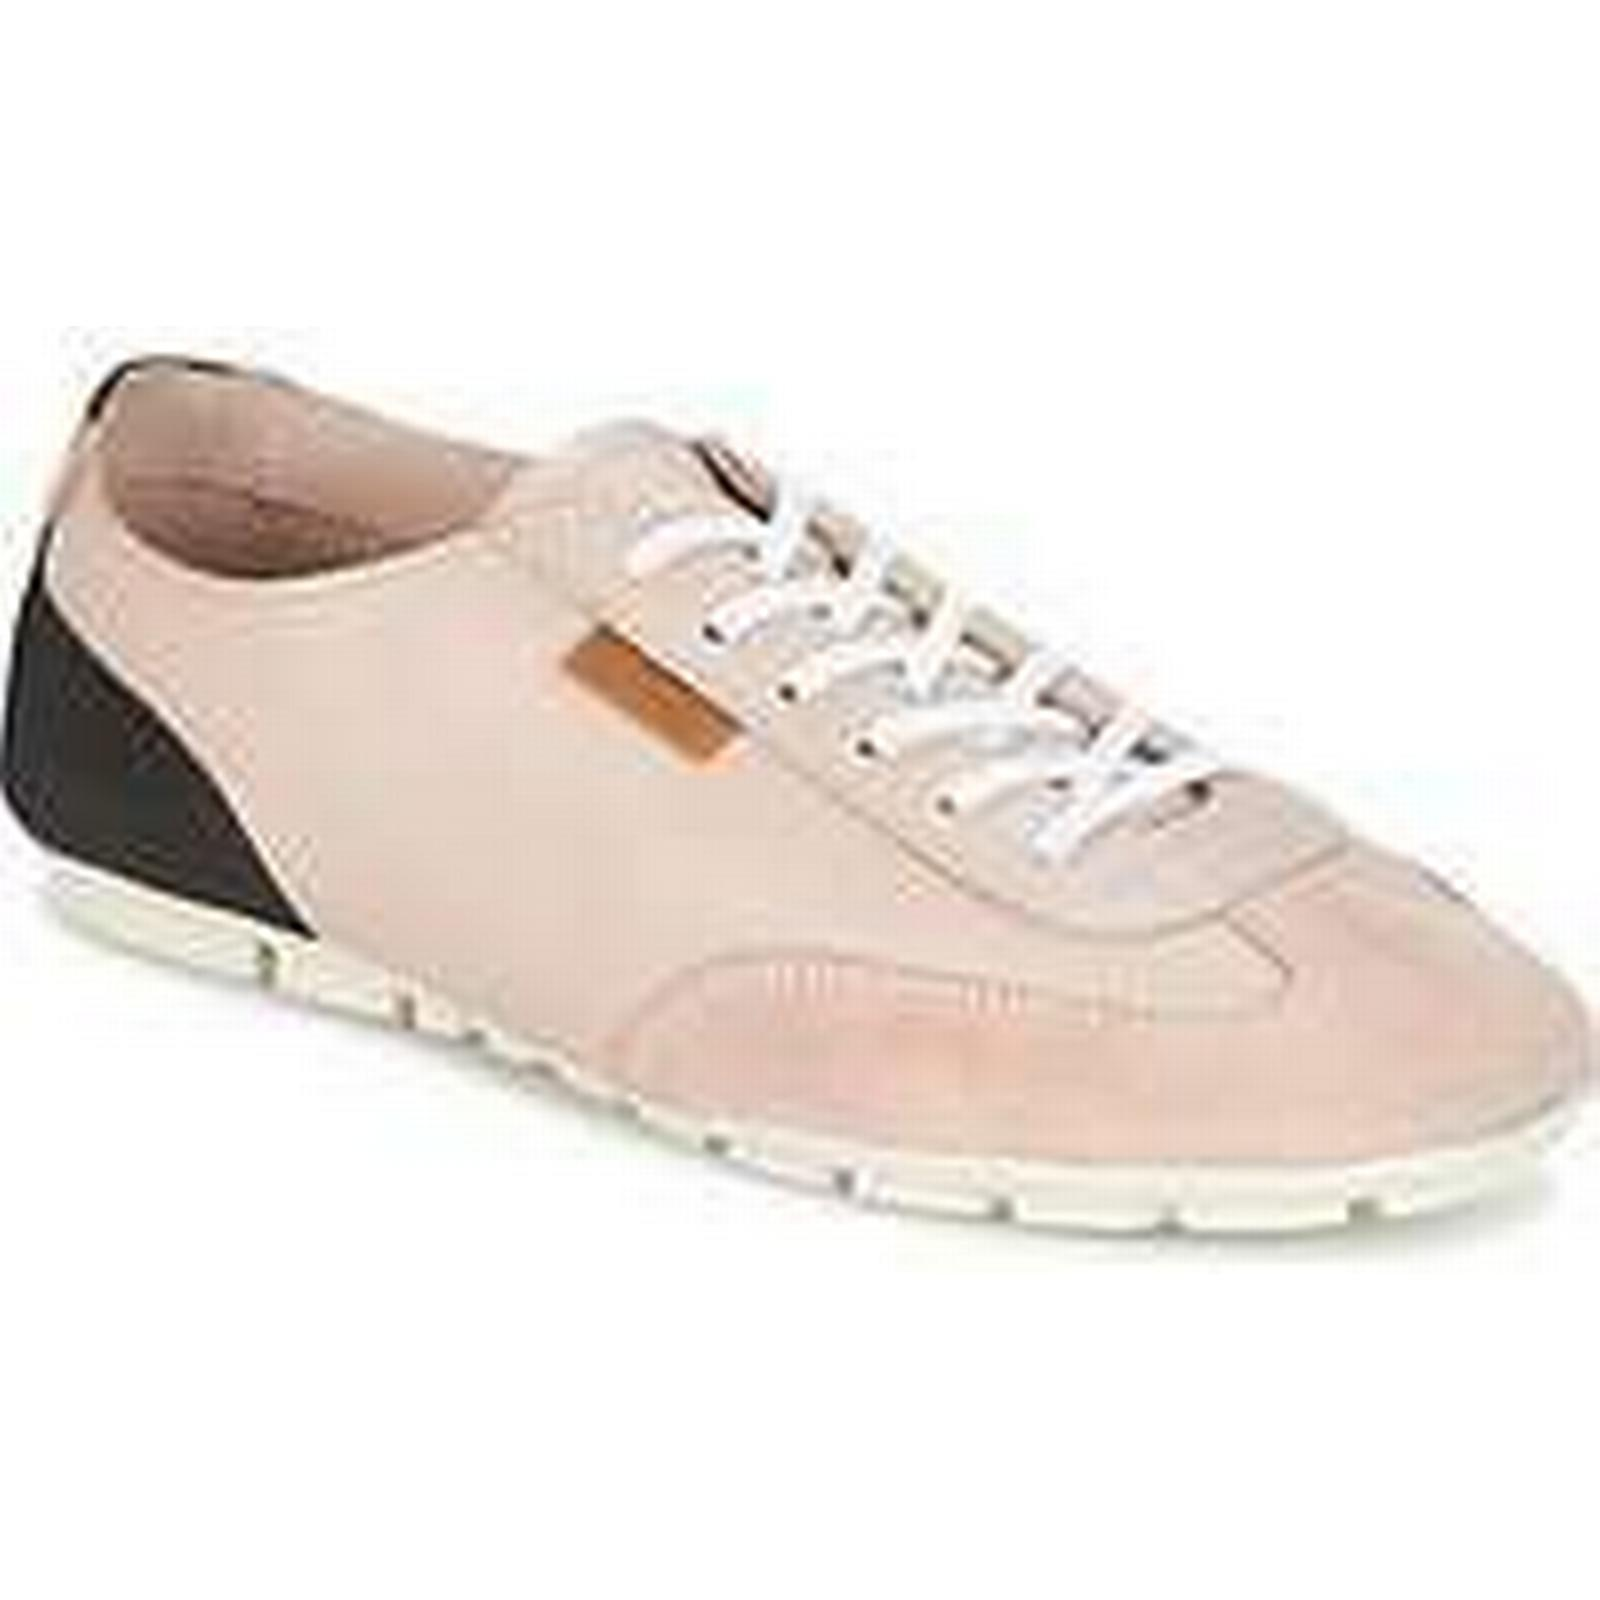 Spartoo.co.uk Pataugas PRIGHT-PEAU women's in Shoes (Trainers) in women's Pink 5da82c